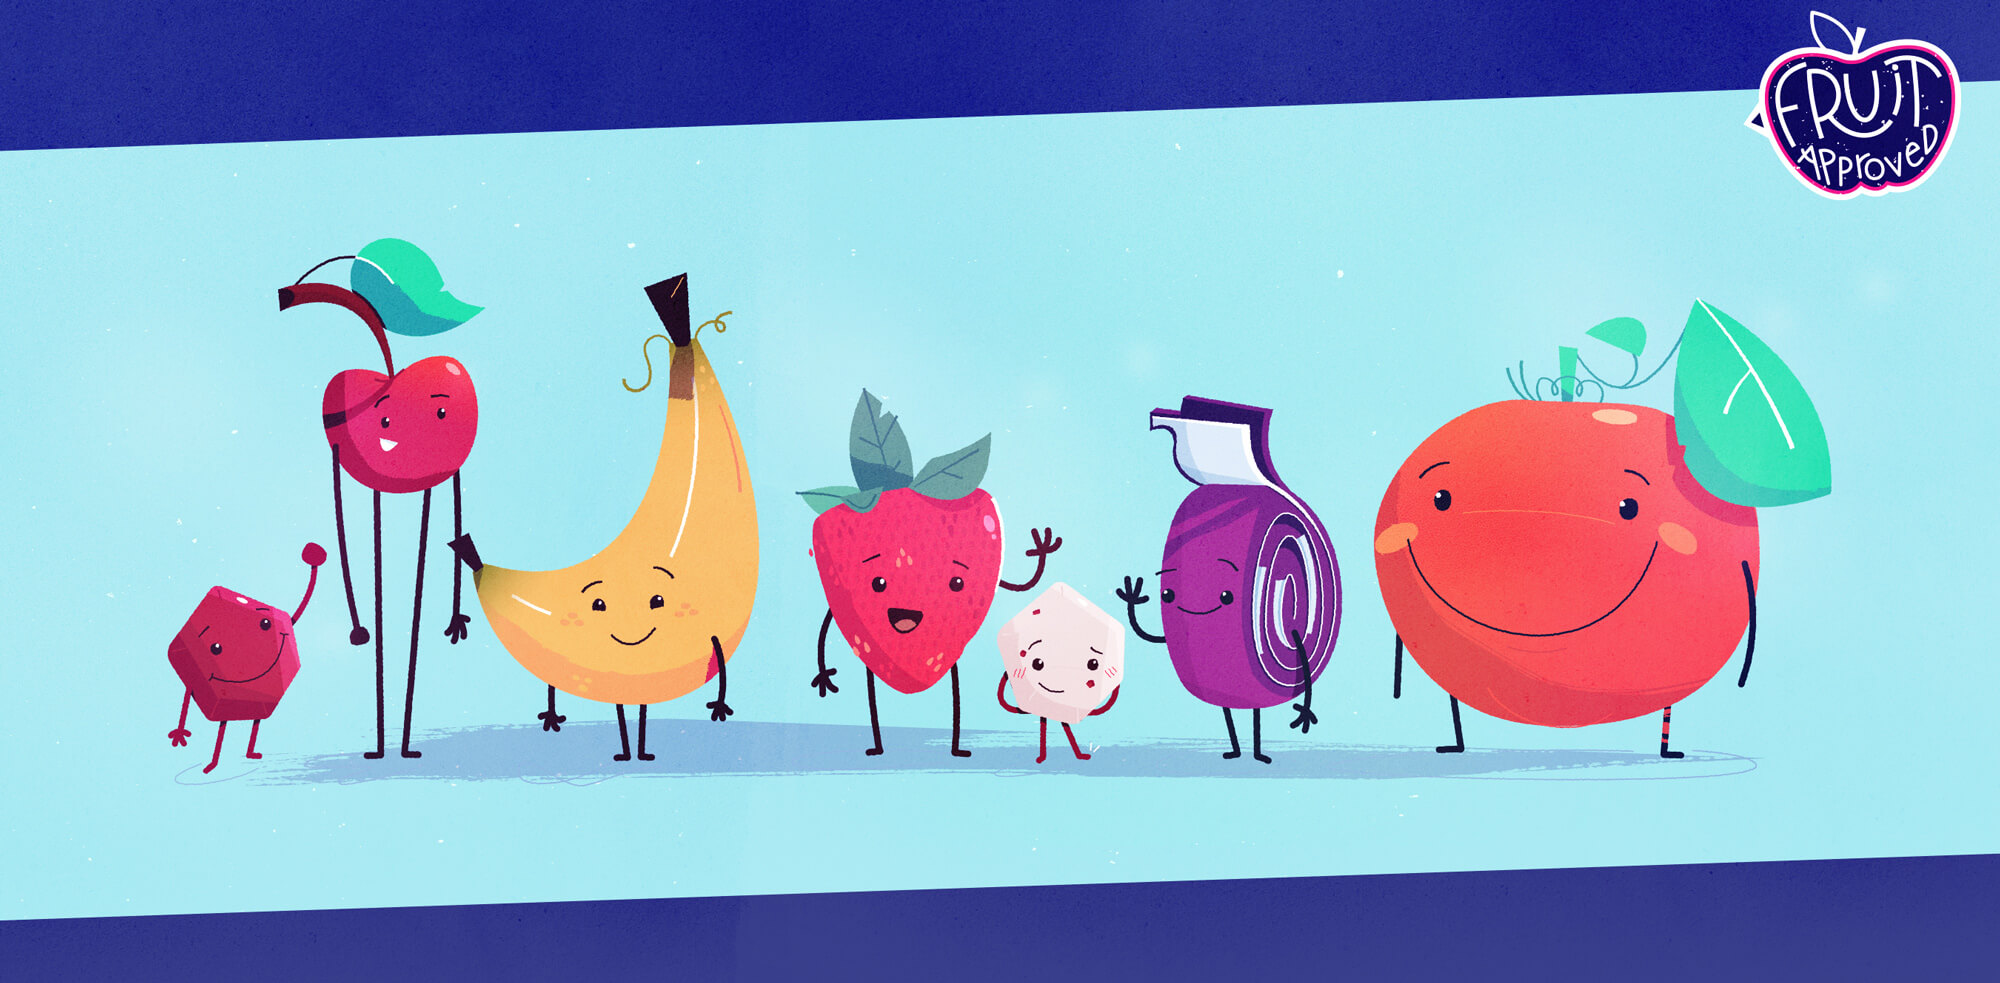 Early versions of the characters. Note the banana and orange are much sillier